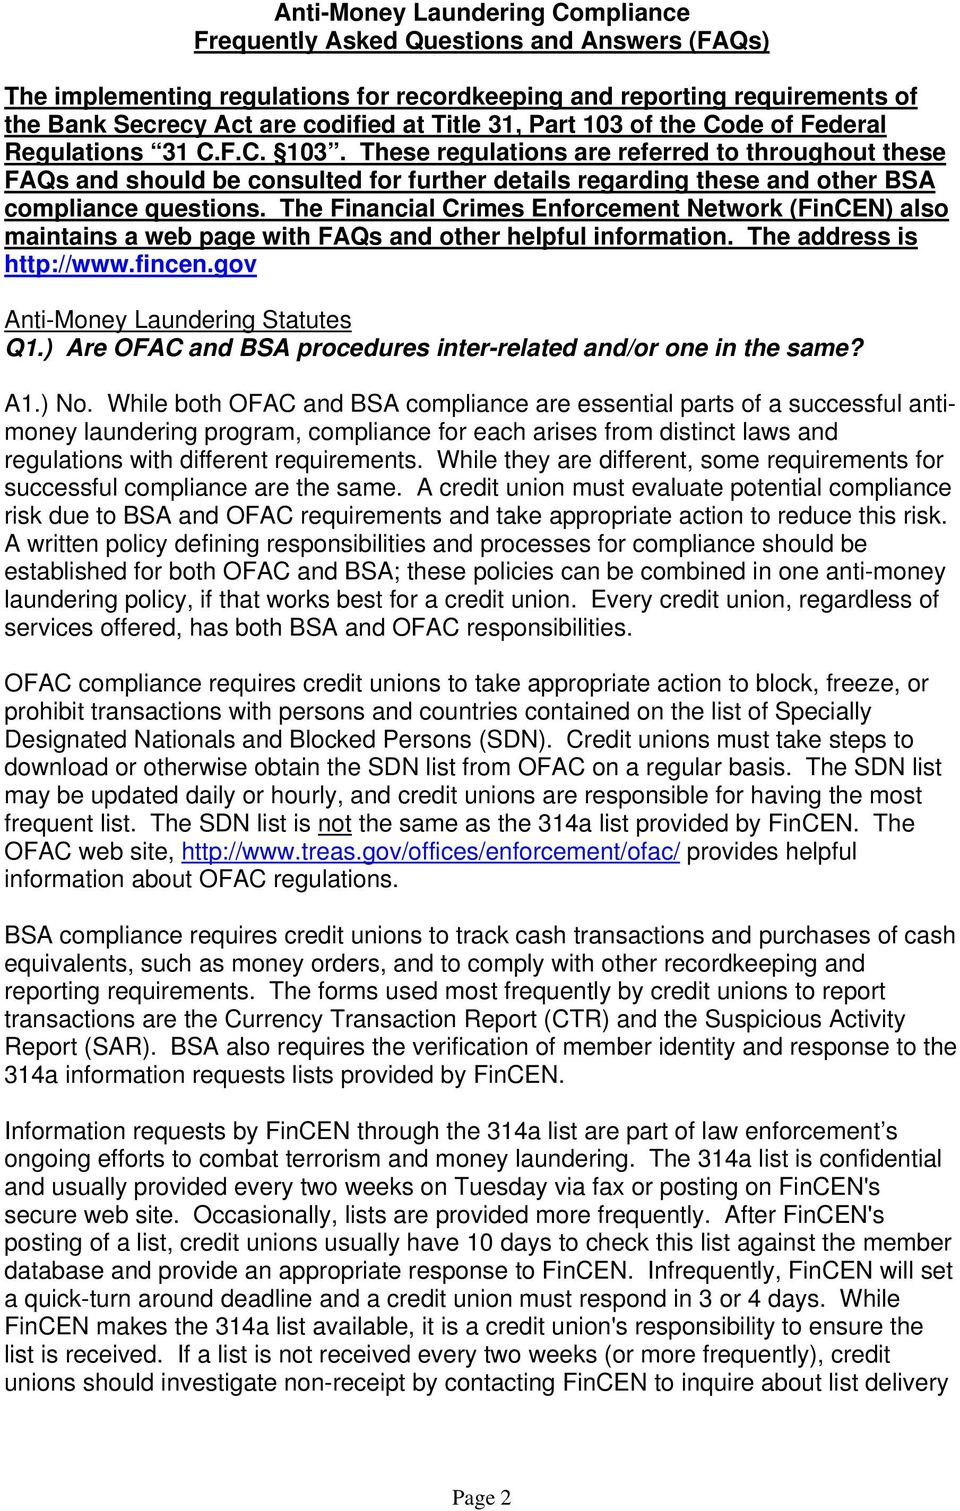 The Financial Crimes Enforcement Network (FinCEN) also maintains a web page with FAQs and other helpful information. The address is http://www.fincen.gov Anti-Money Laundering Statutes Q1.